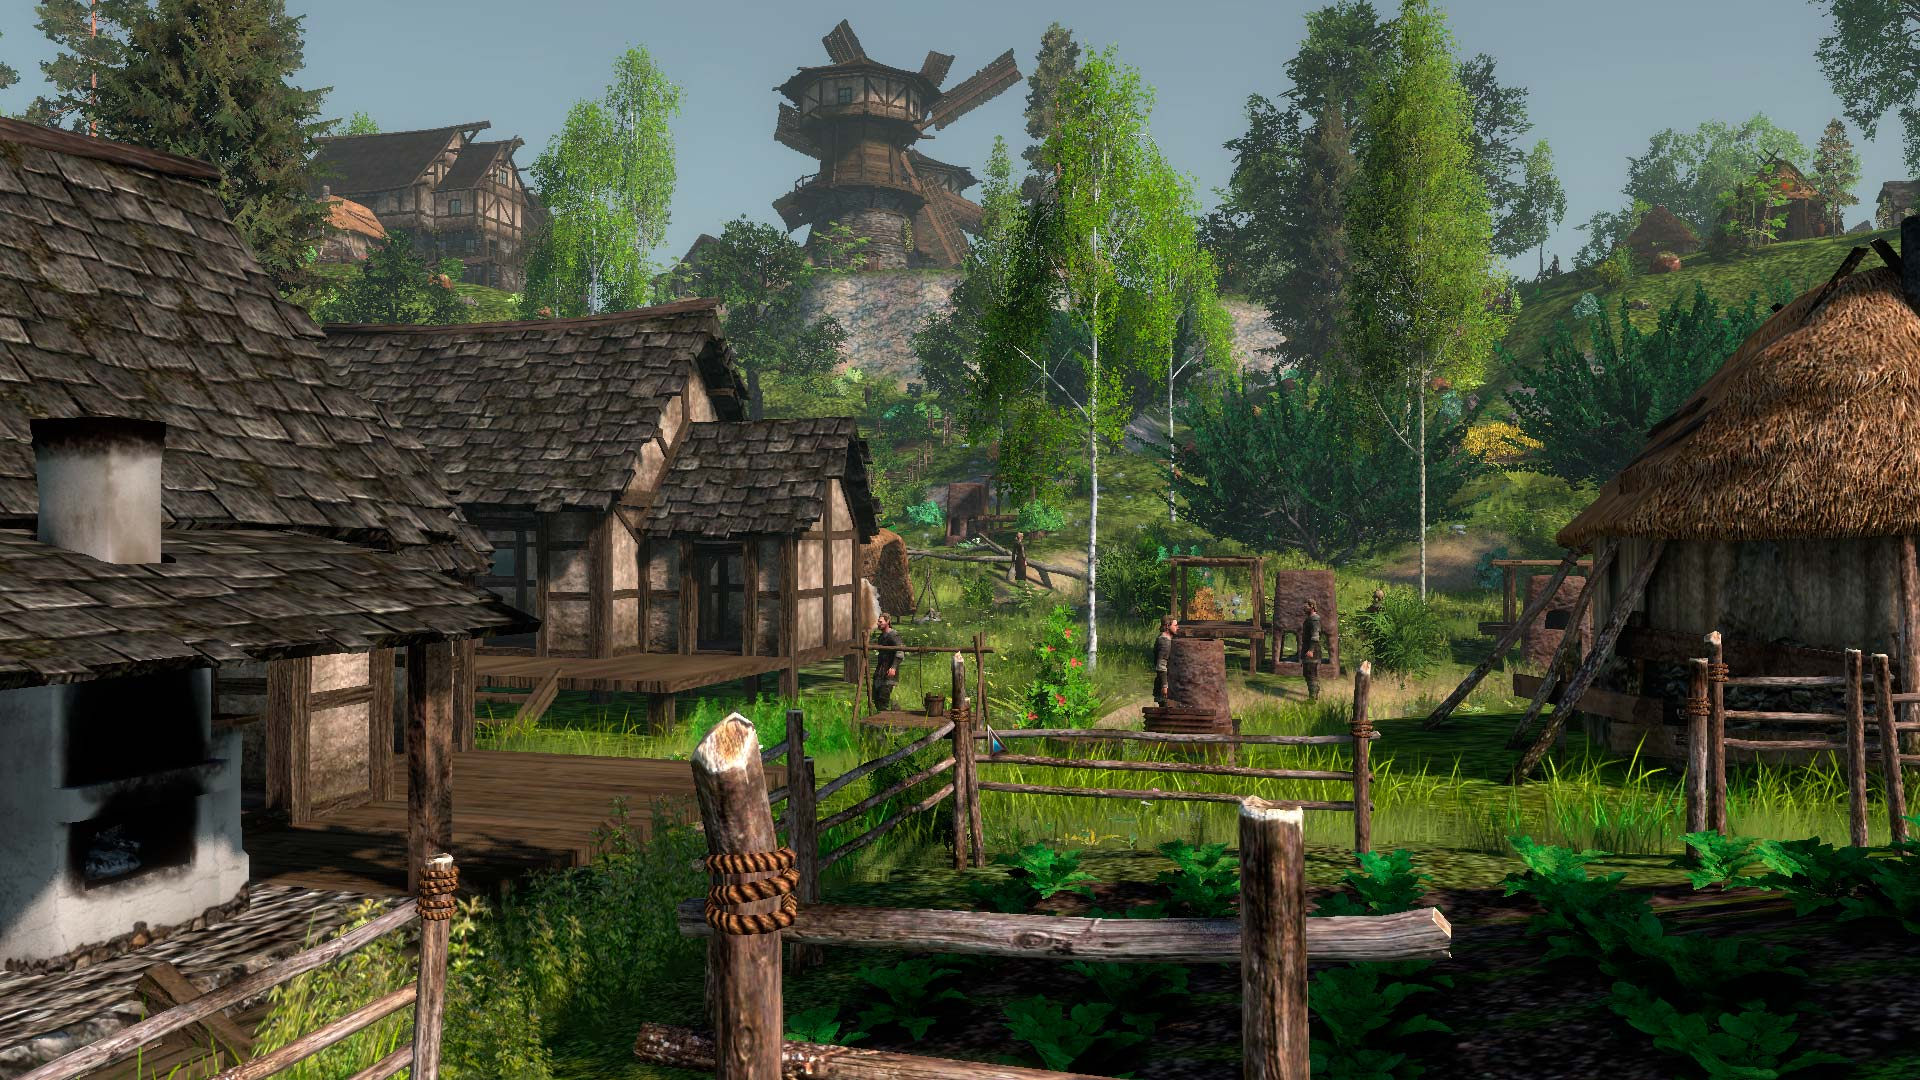 http://forest-village-game.com/wp-content/gallery/lif-forest-village/First-Person-View.jpg